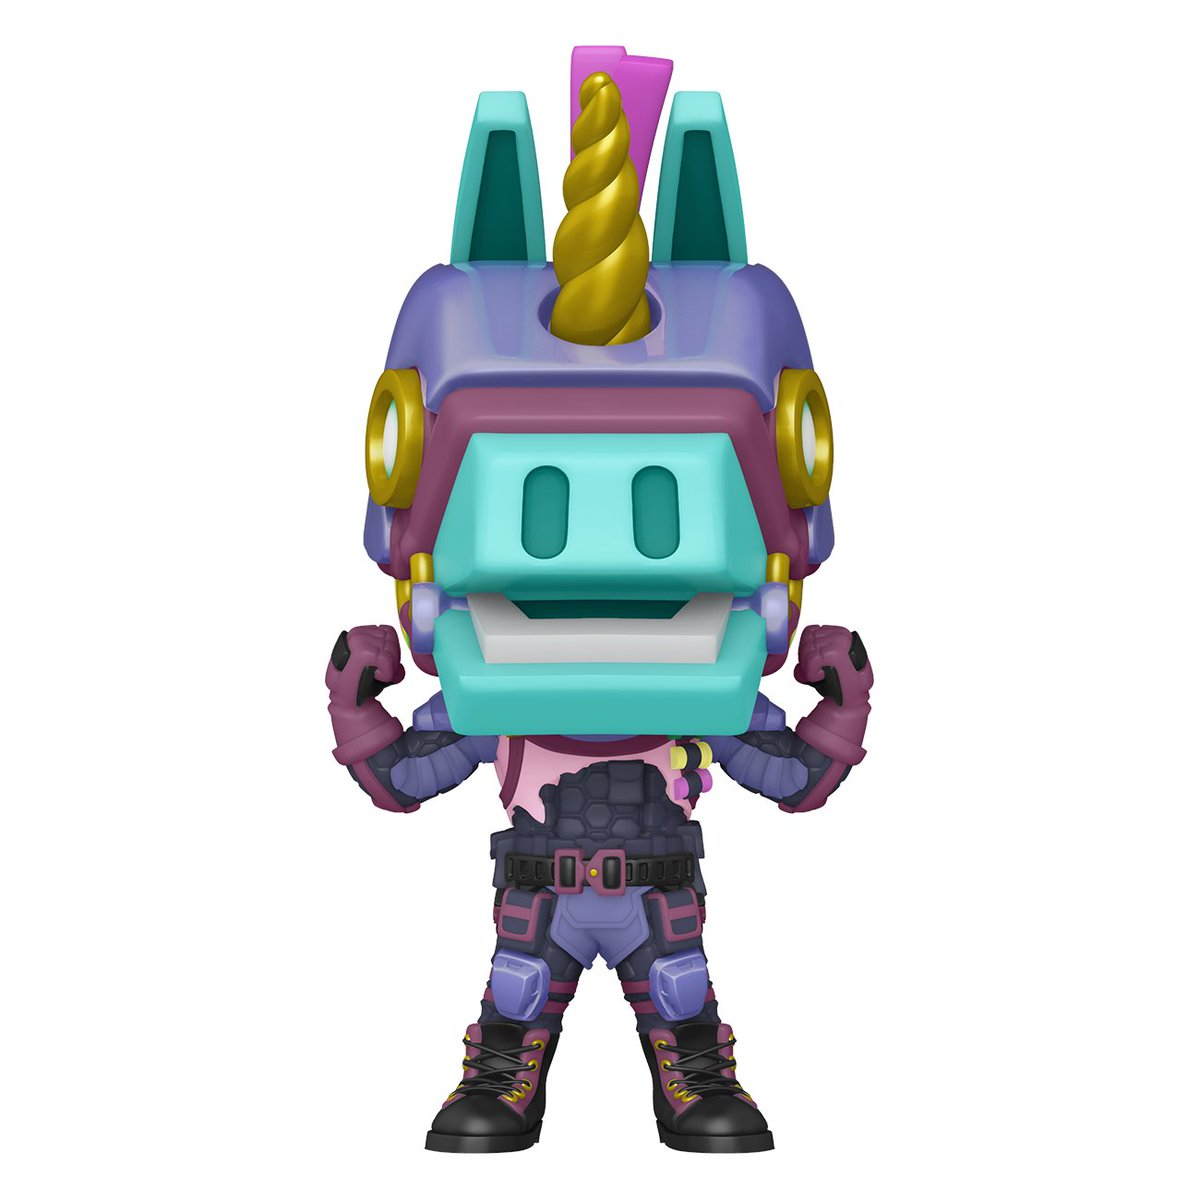 RT & follow @OriginalFunko for a chance to win this NYCC Fortnite –Bash Pop! #FunokVirtualCon #FunkoNYCC #NYCC (p.s. this Pop! is still available on Funko Shop!  )